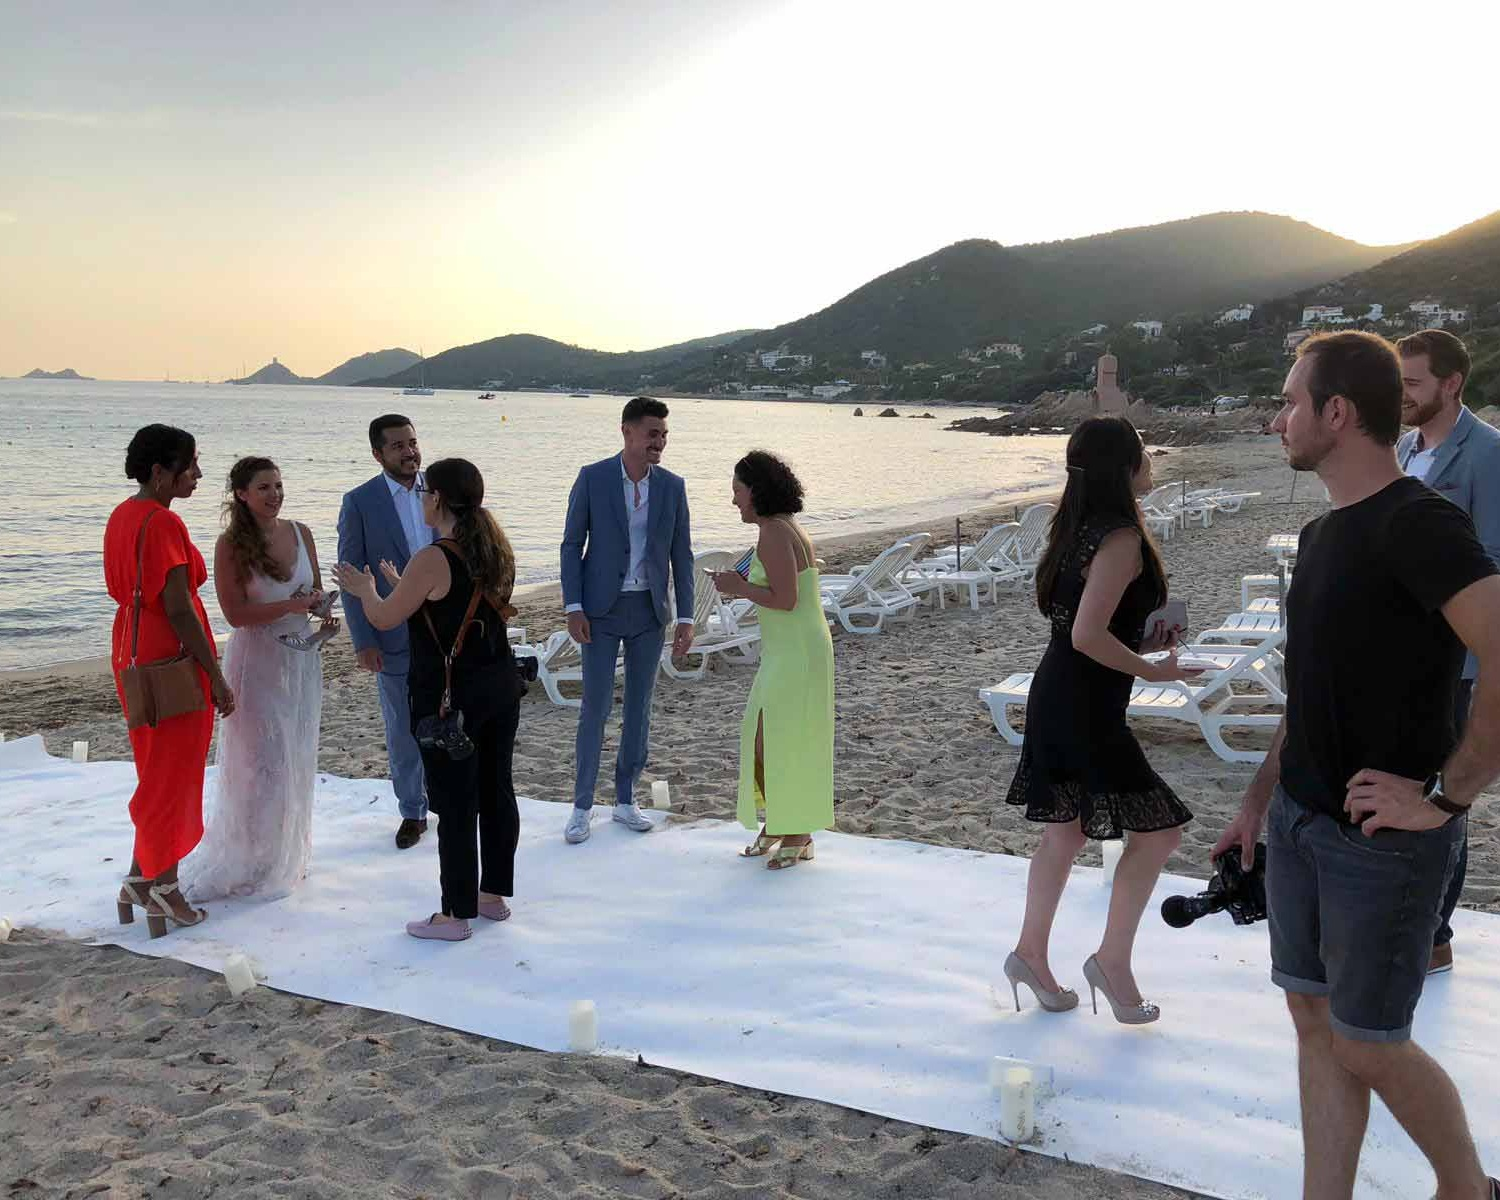 Corsica is not a shabby place for a white wedding, hey?